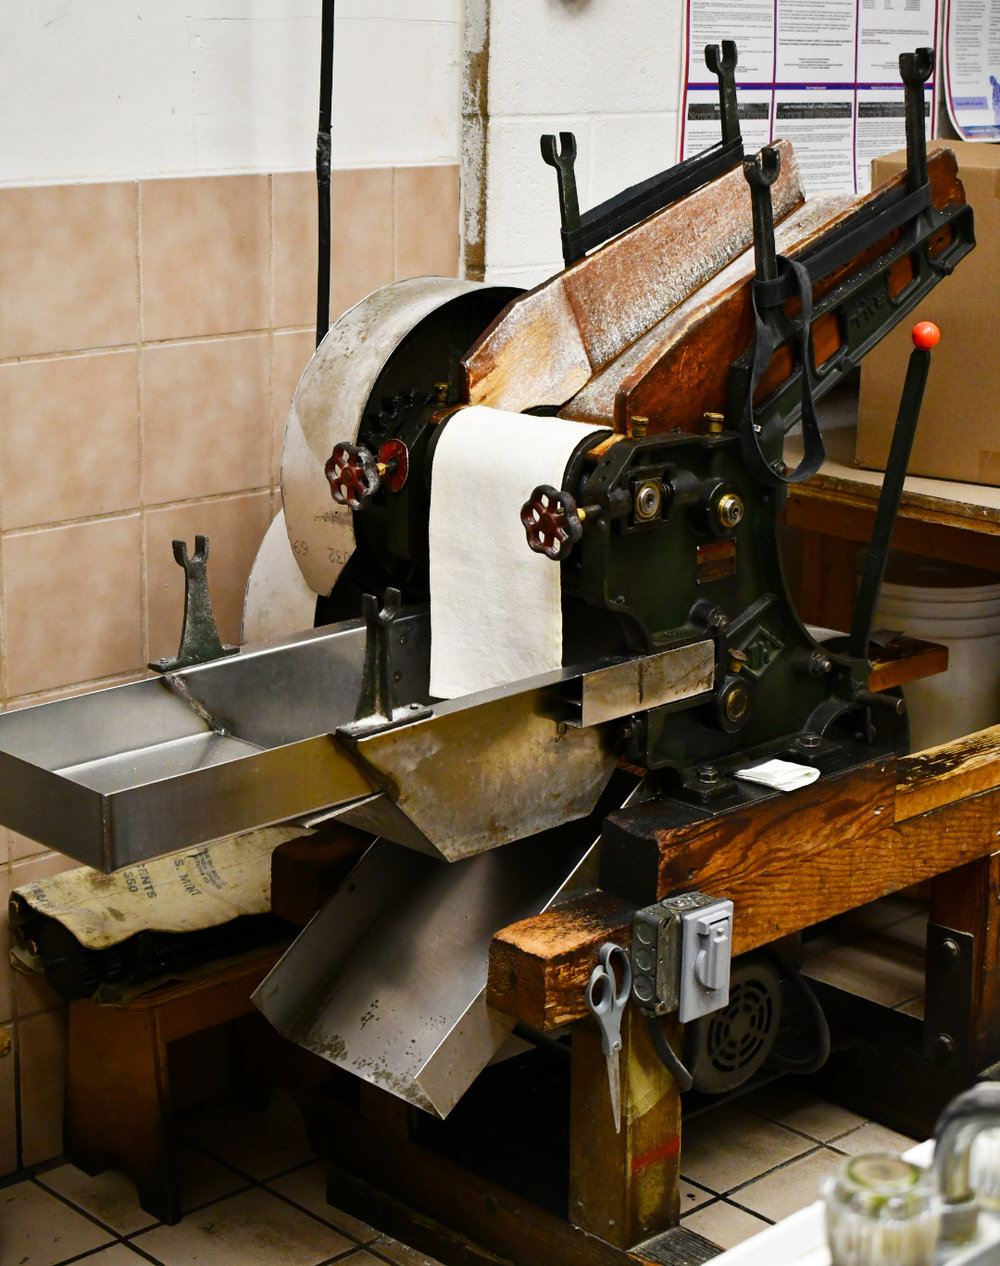 The original noodle machine from the 1950's used to make the noodles at Shige's Saimin Stand. The noodles are made fresh daily.